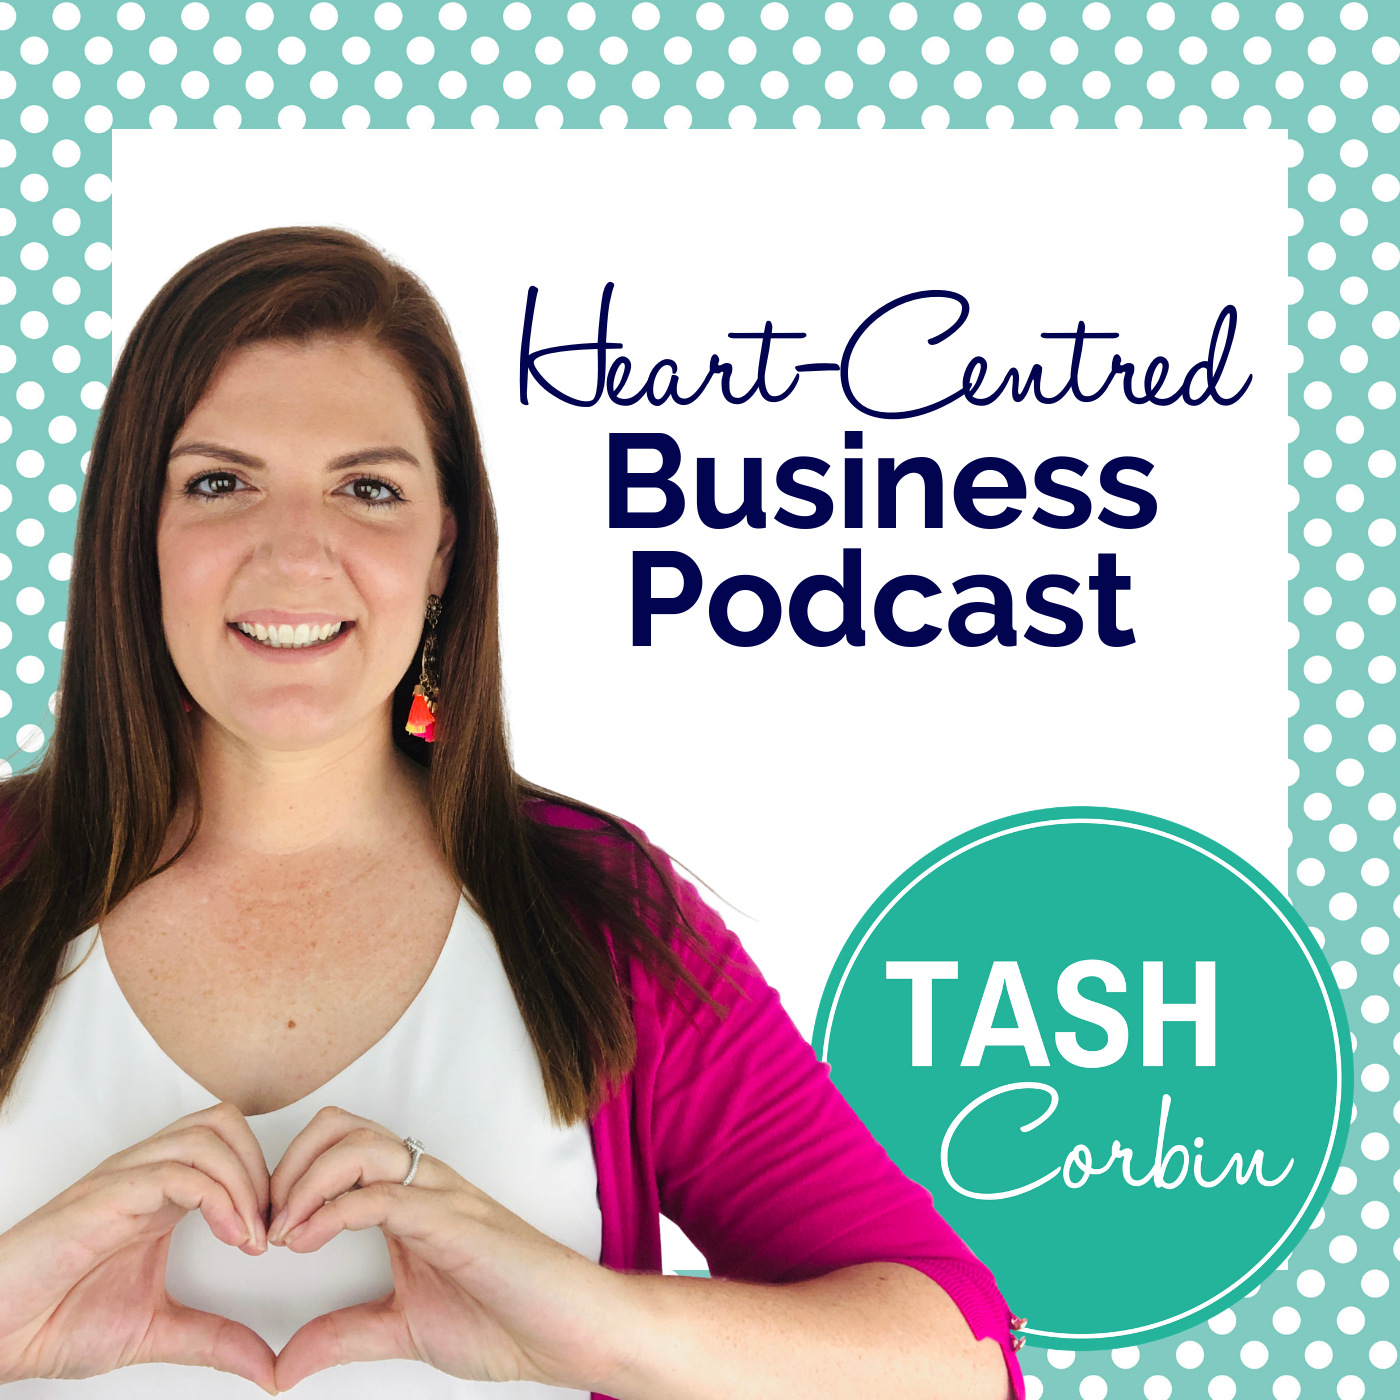 Heart-Centred Business Podcast show art